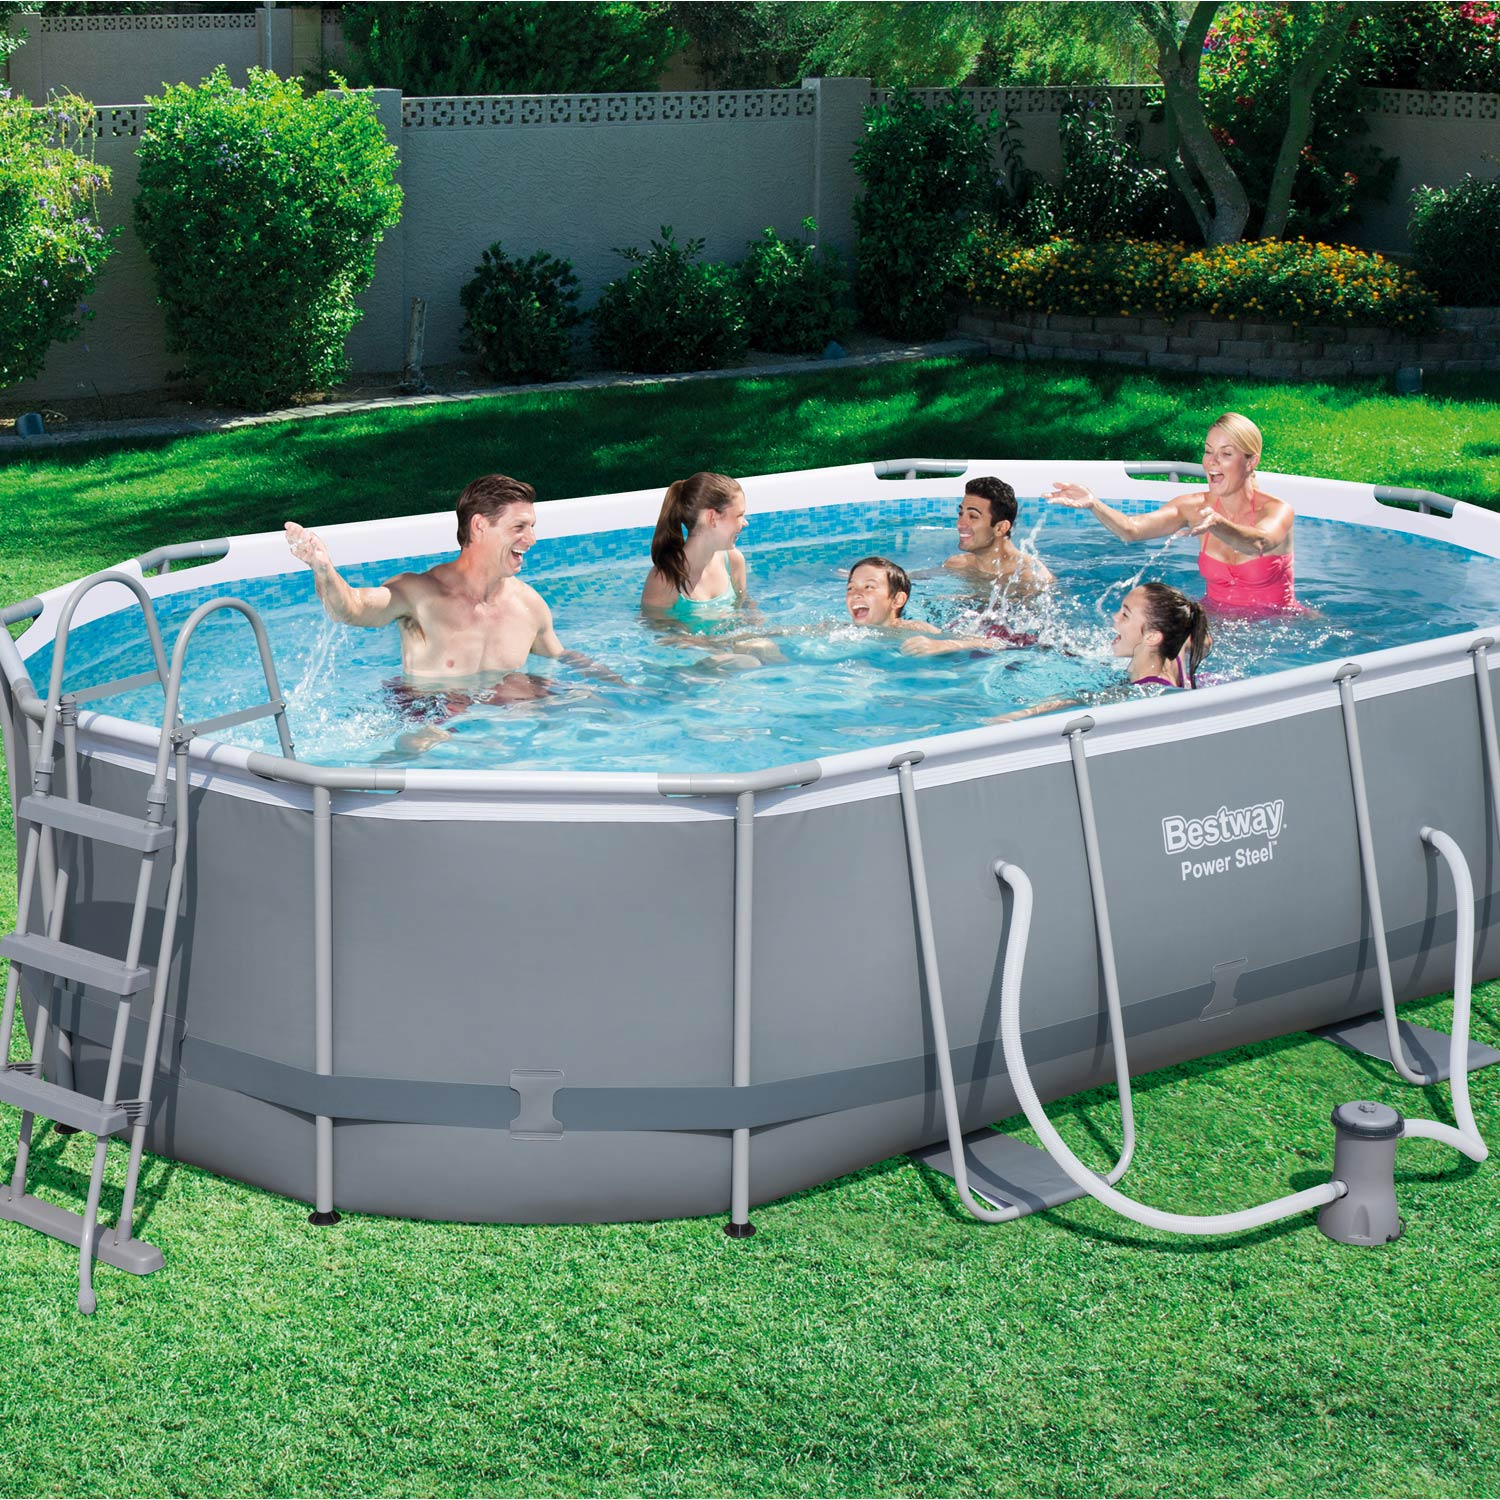 Piscine hors sol autoportante tubulaire bestway l x for Sevylor piscine hors sol